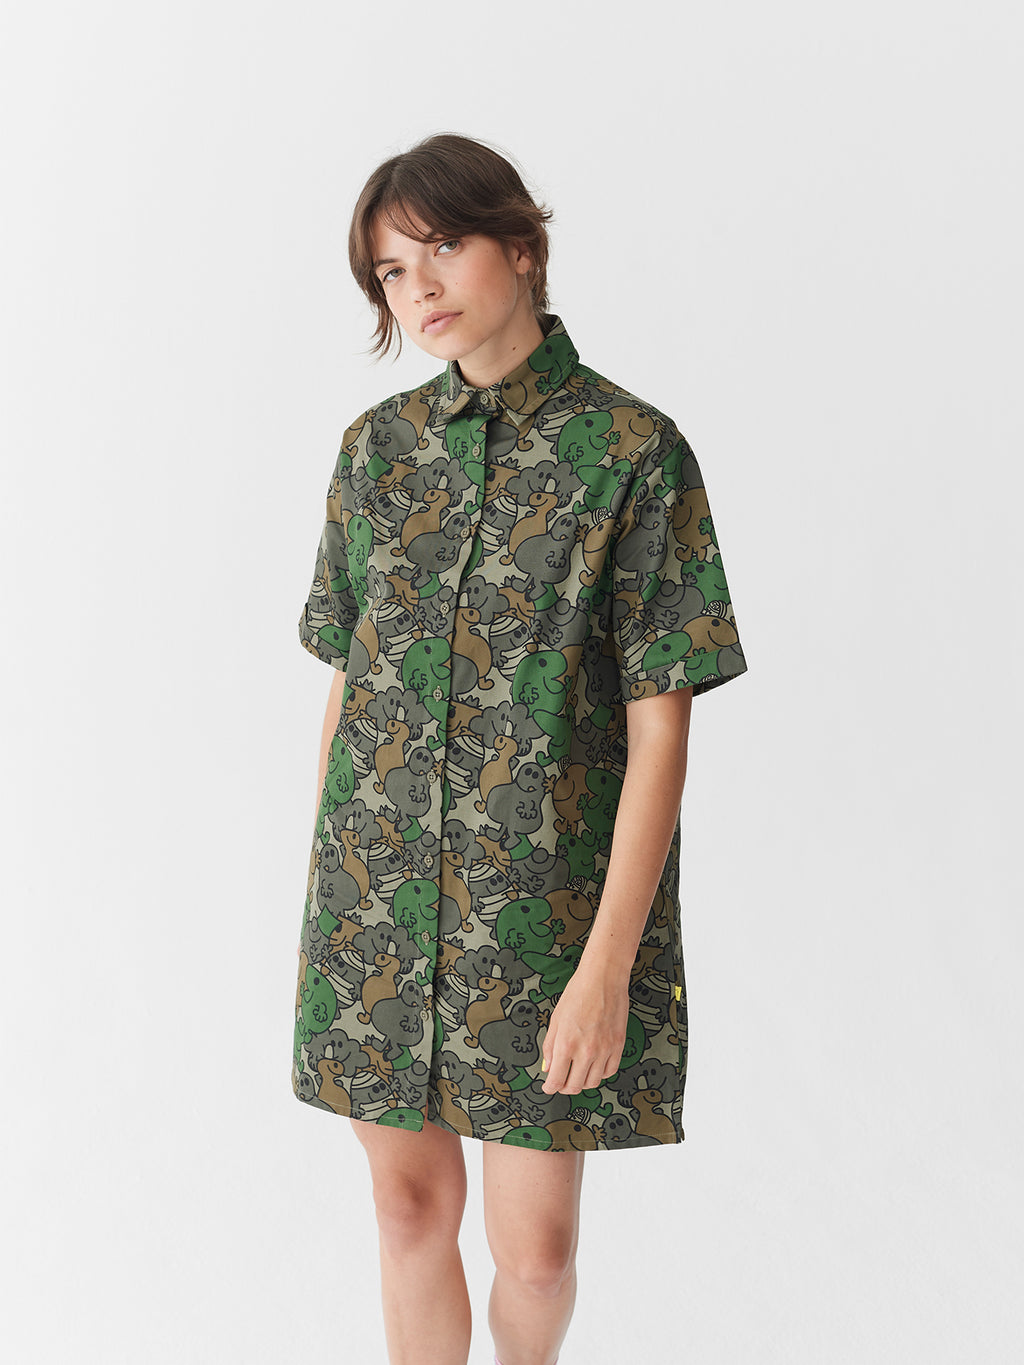 Lazy Oaf x Mr. Men Camo Shirt